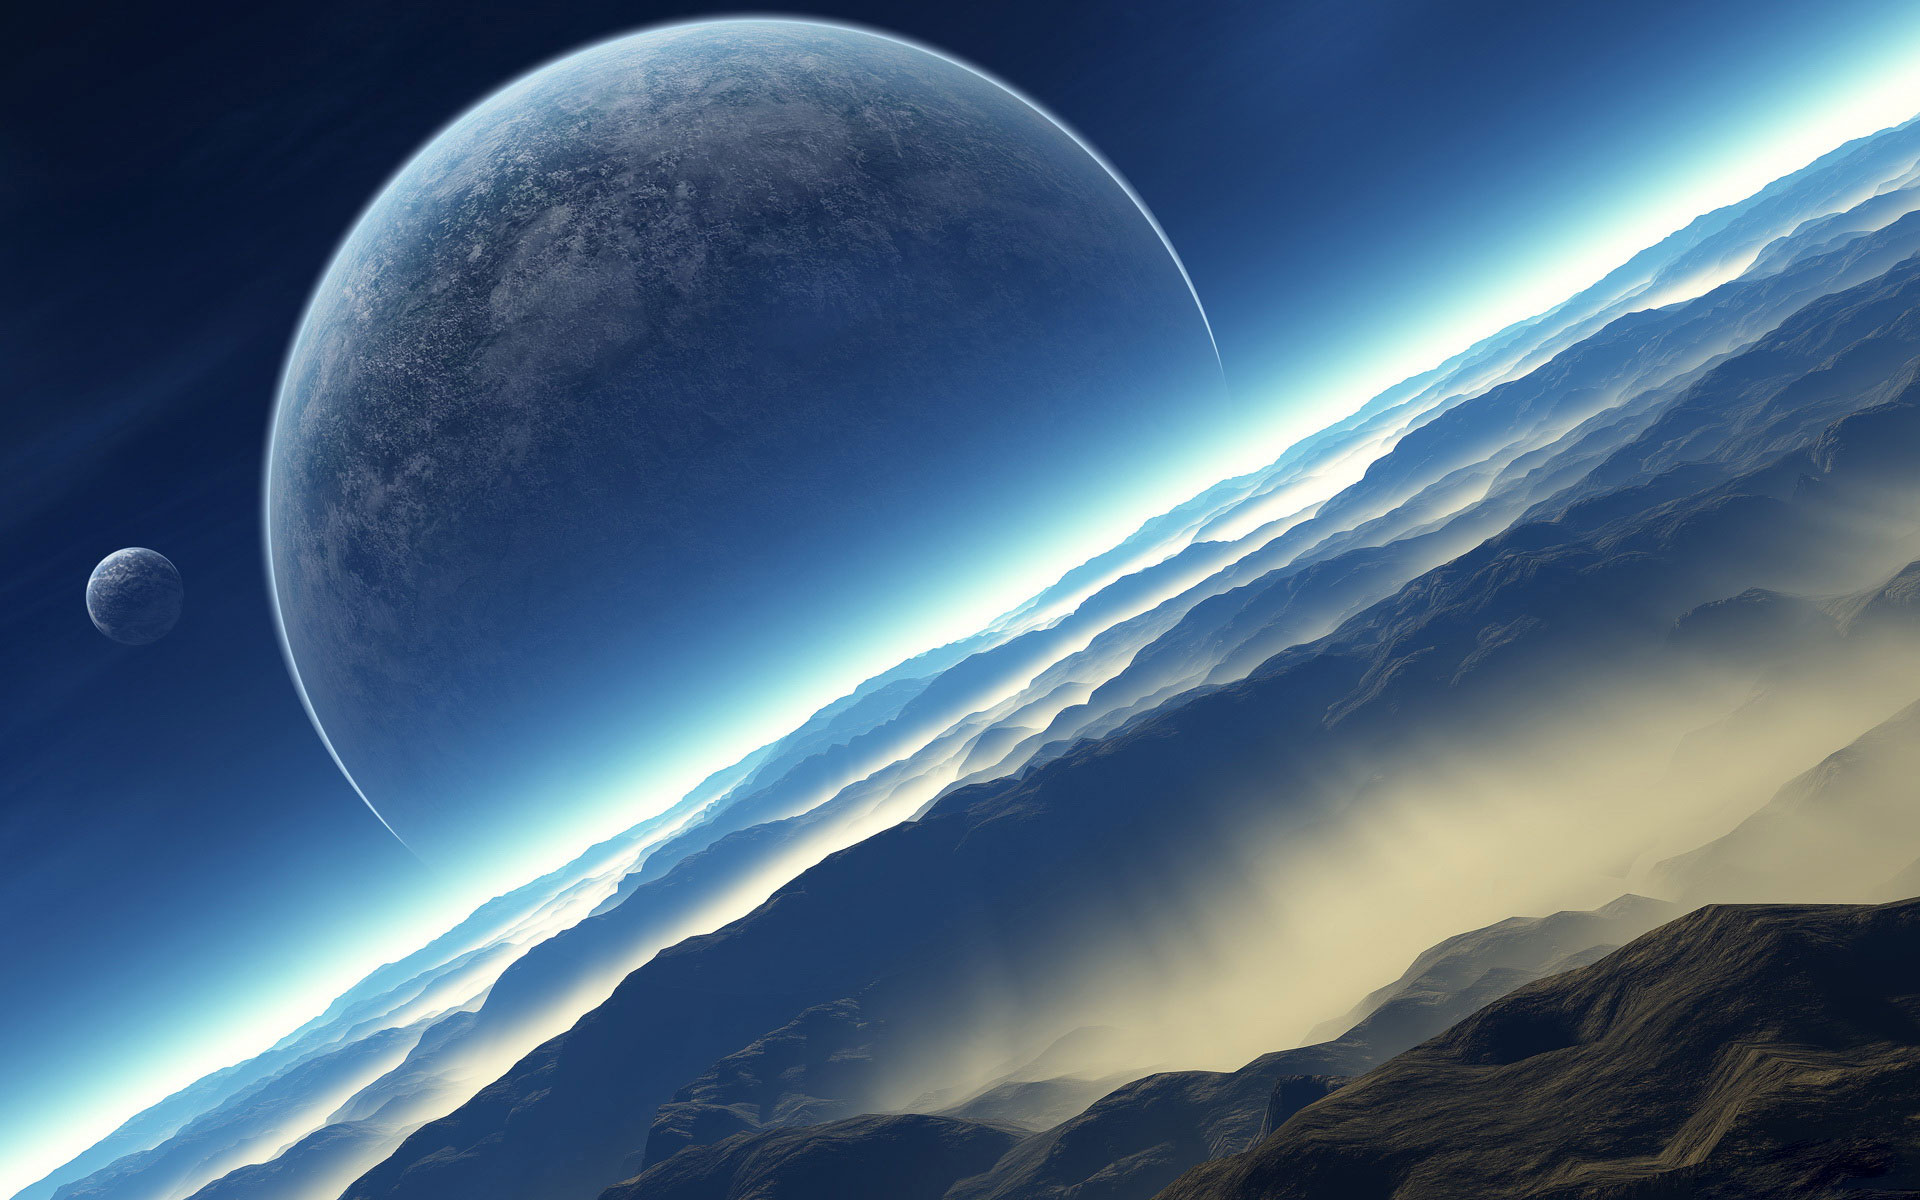 HD Planets Wallpaper